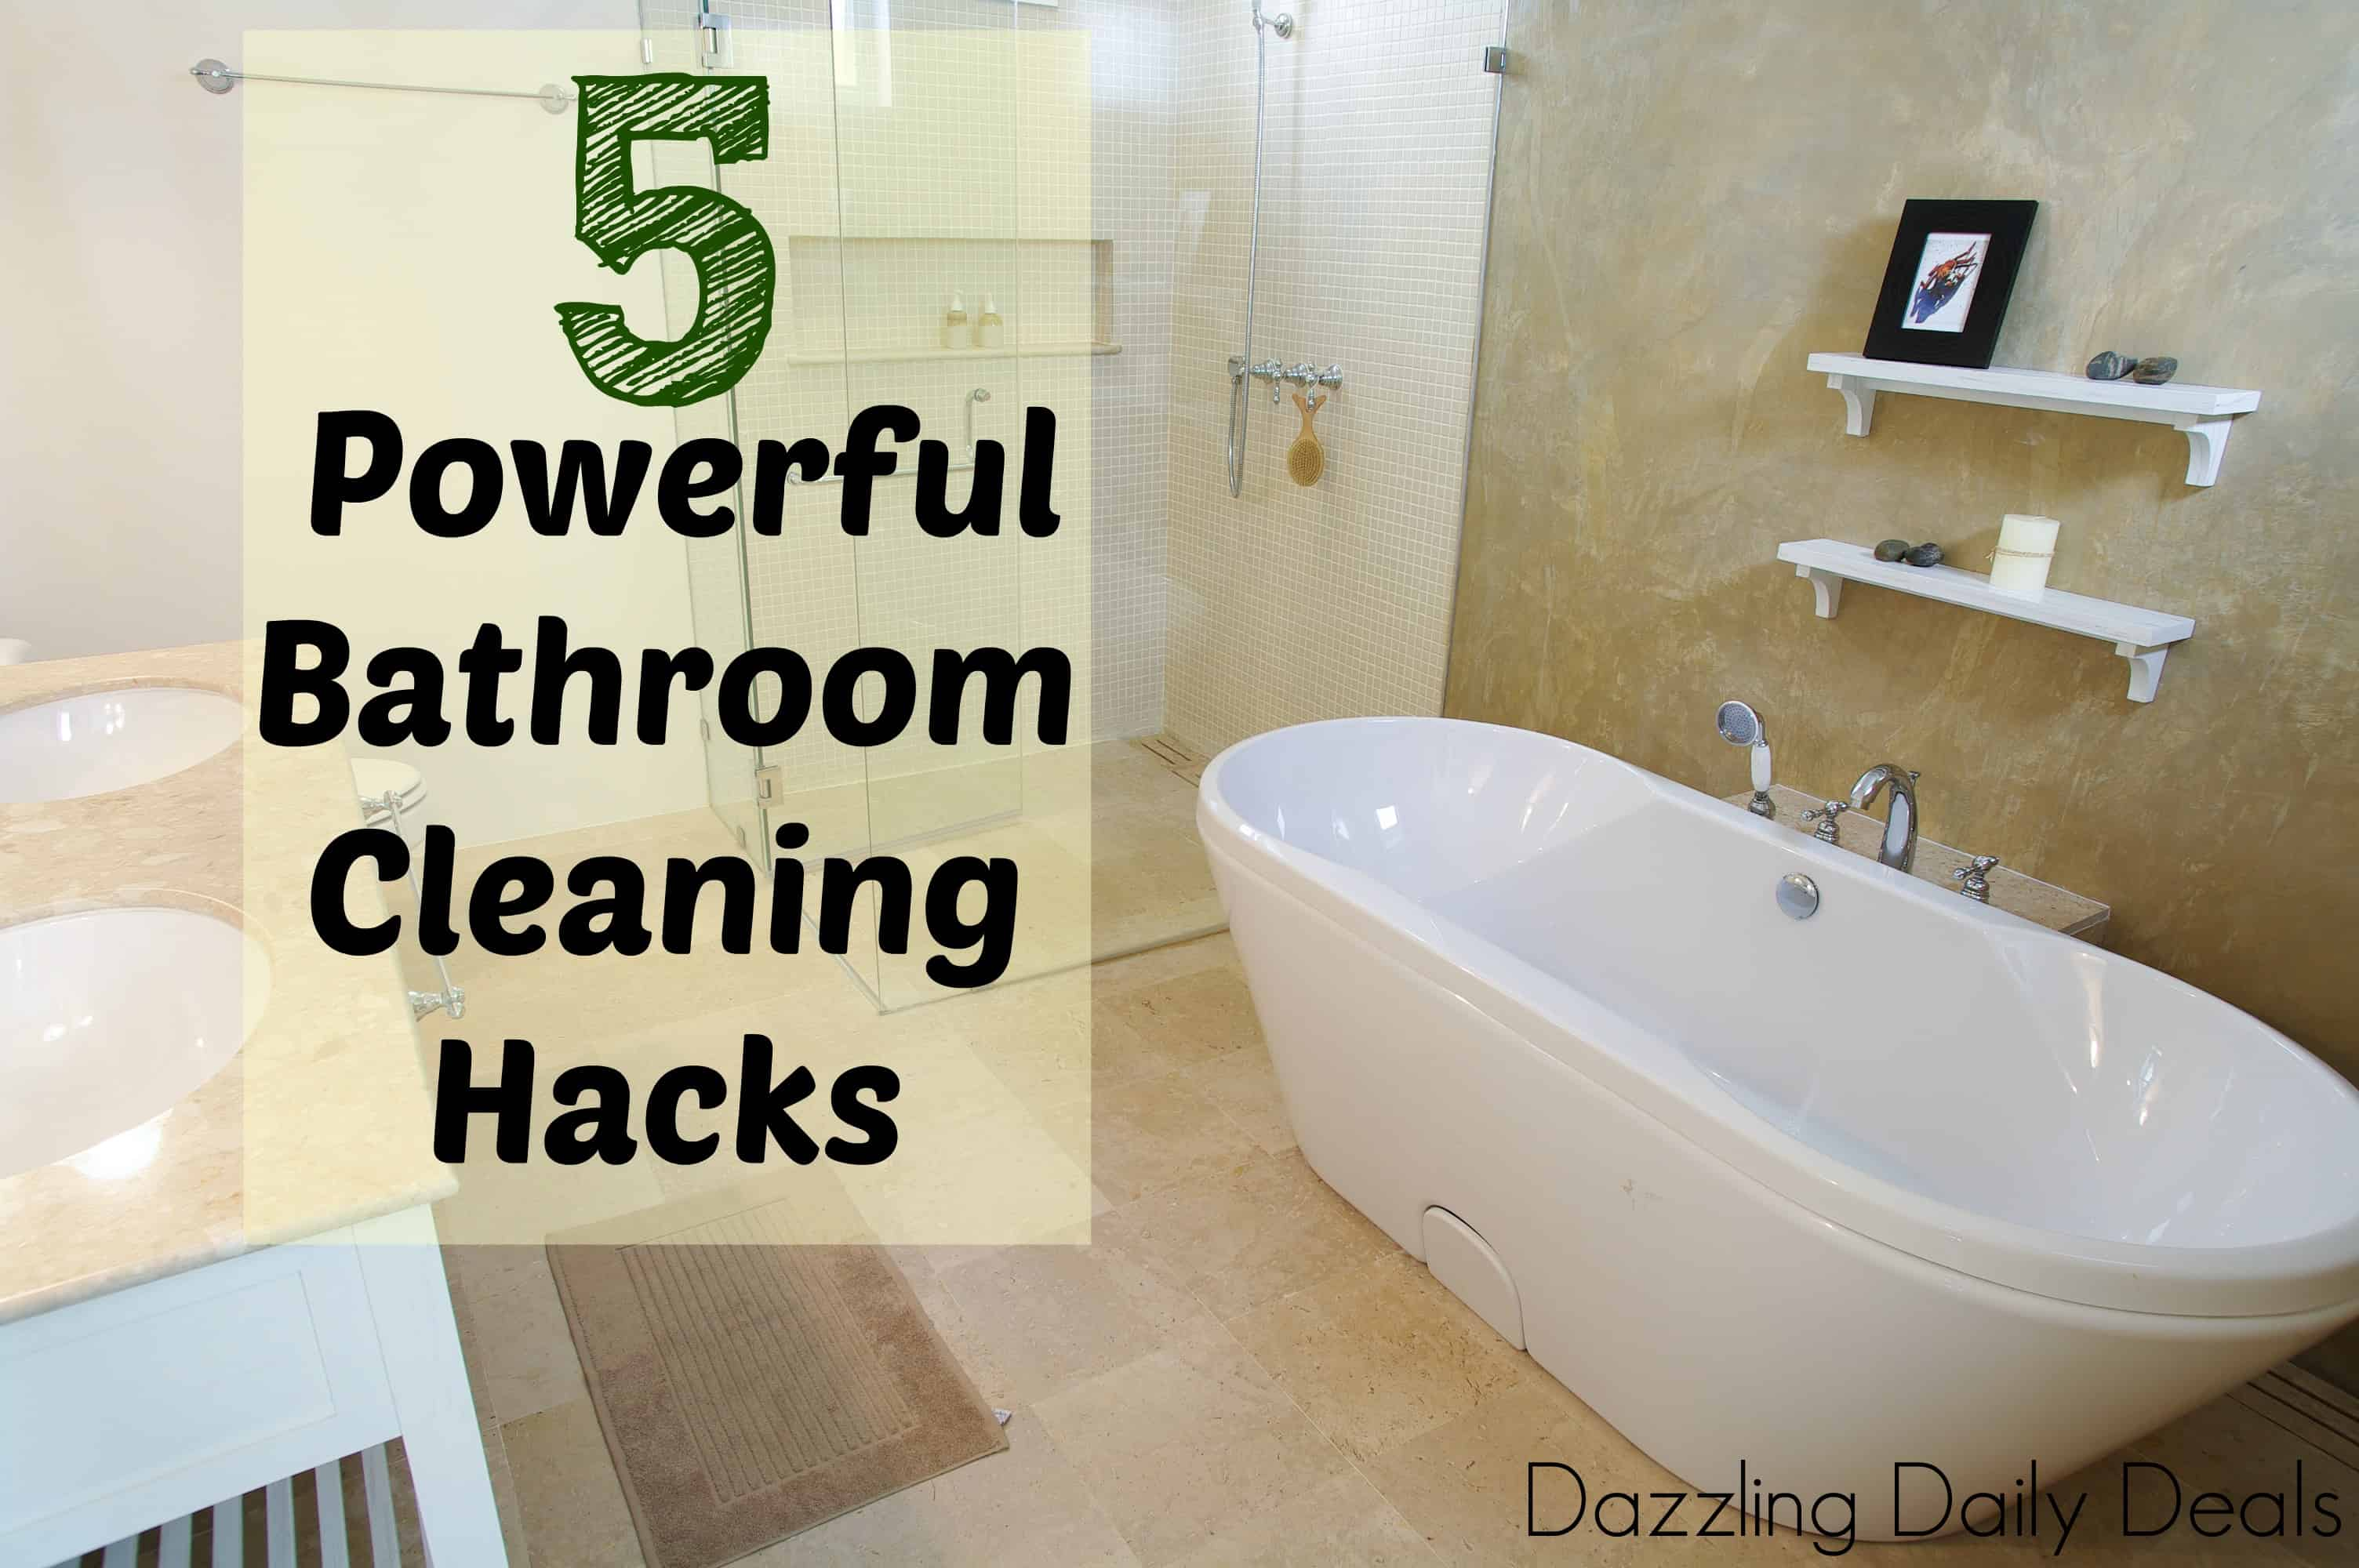 five powerful bathroom cleaning hacks dazzling daily deals - Bathroom Cleaning Hacks